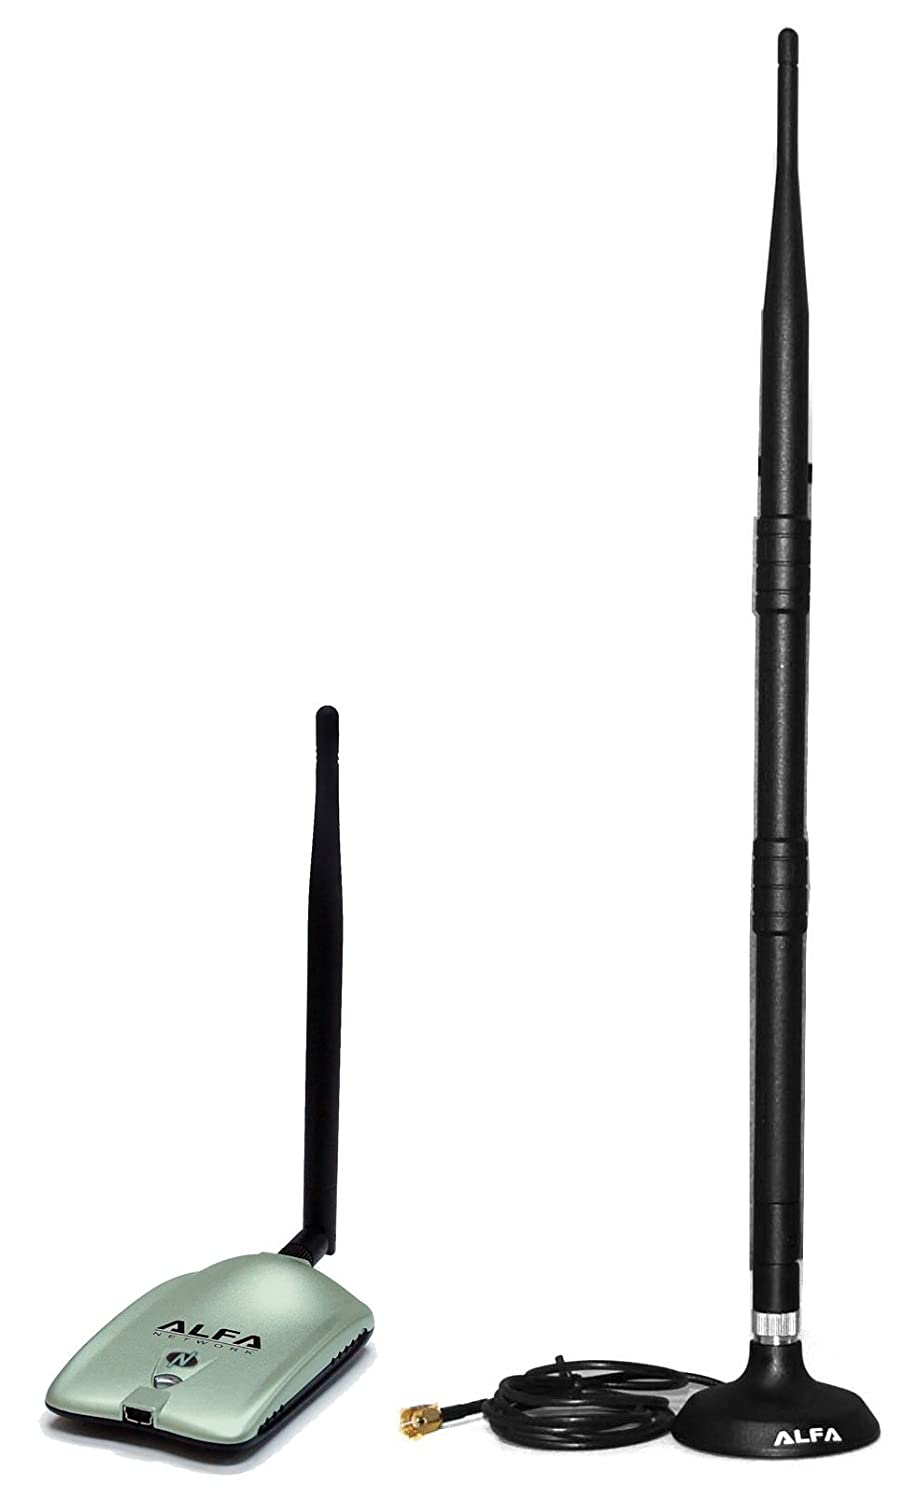 Alfa 2000mW 2W 802.11g/n High-Gain USB Wireless G / N Long-Range WiFi Network Adapter With Original Alfa 9dBi Rubber Antenna with magnetic base *Strongest on the Market* AWUS036NH + 9dBi magnet antenna